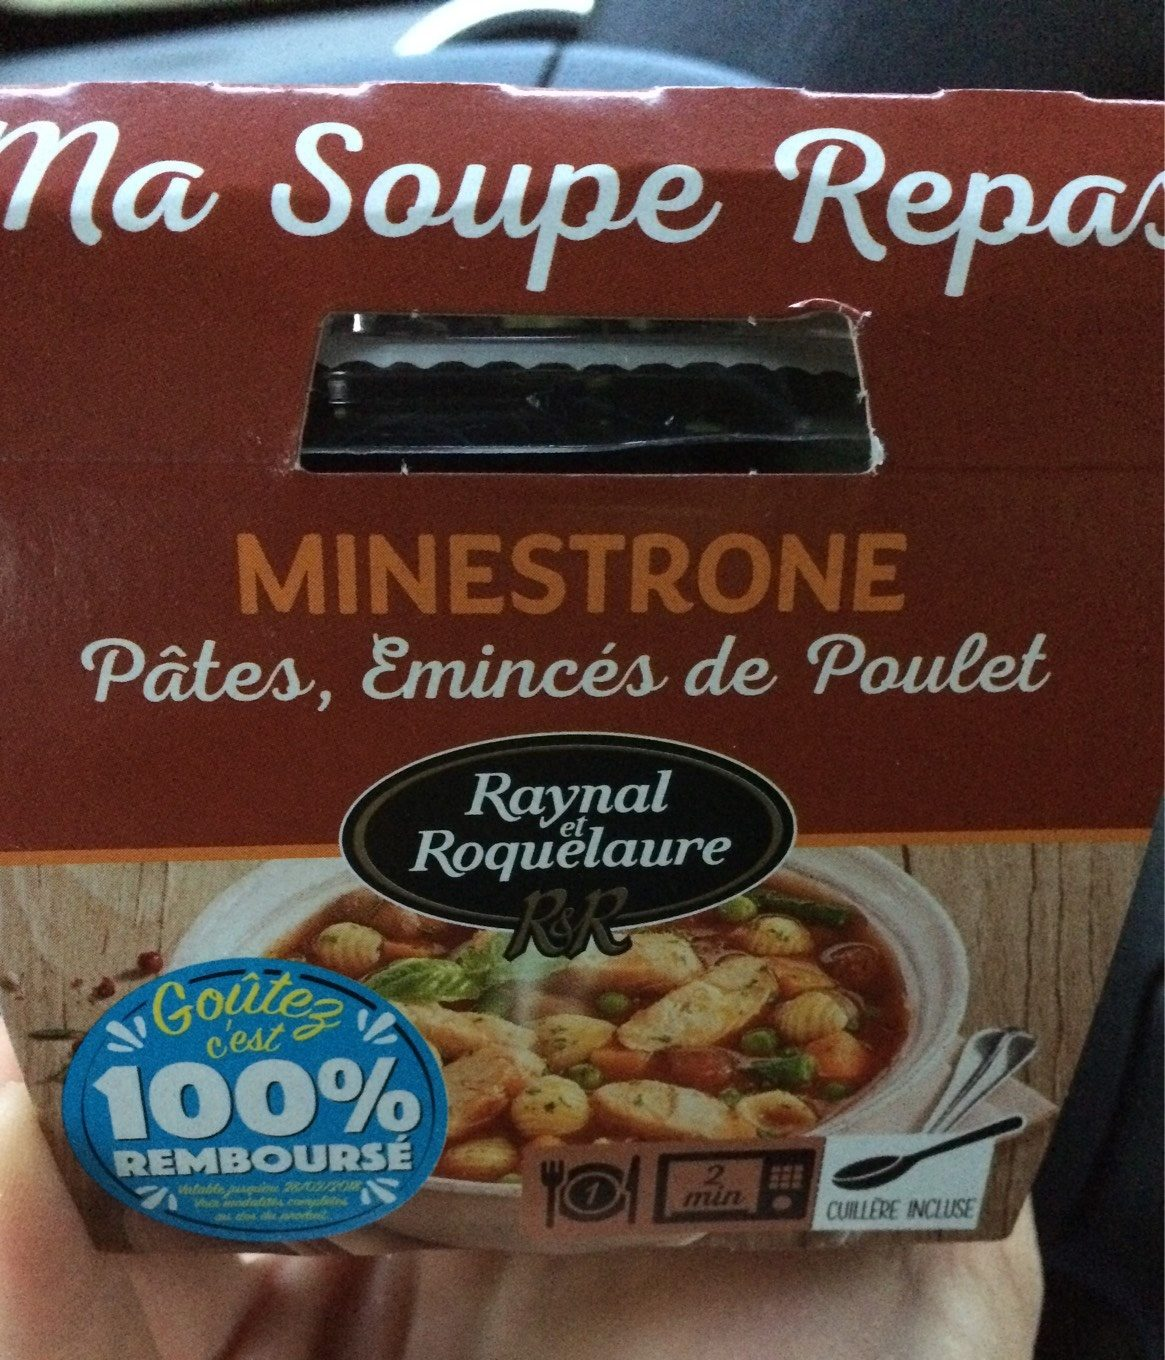 Ma soupe repas minestrone - Product - fr